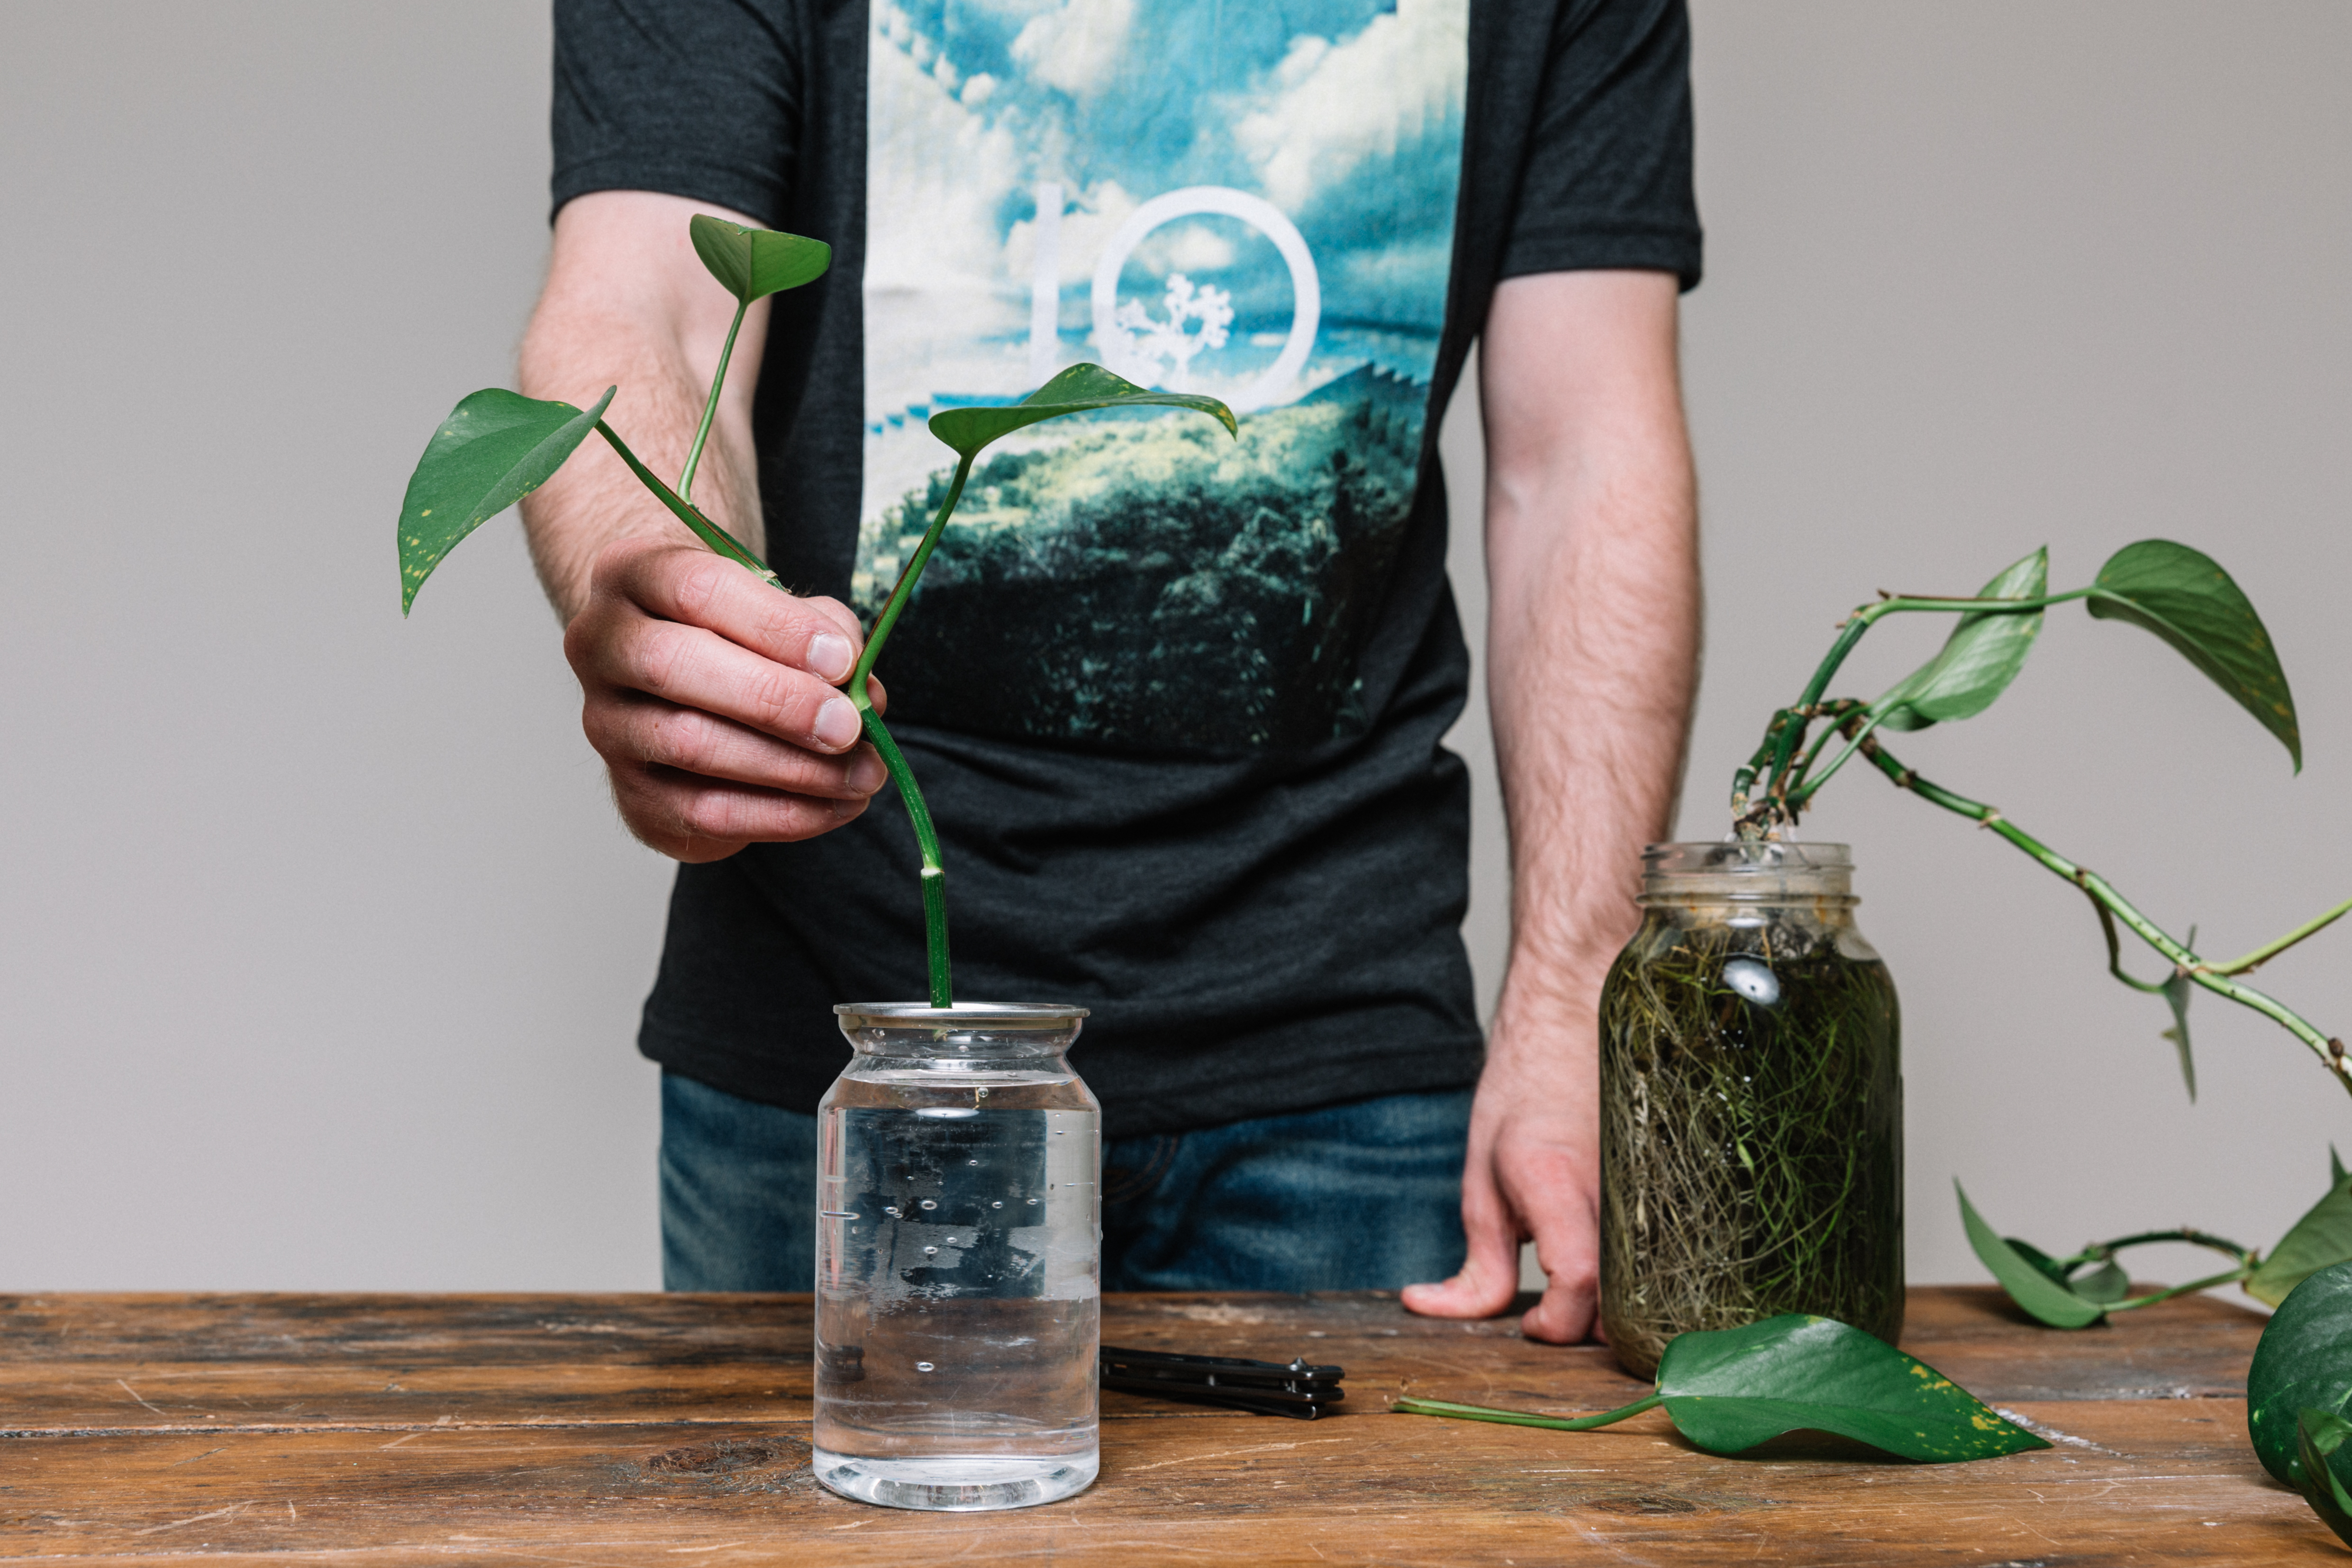 Placing the cutting in a jar of water.